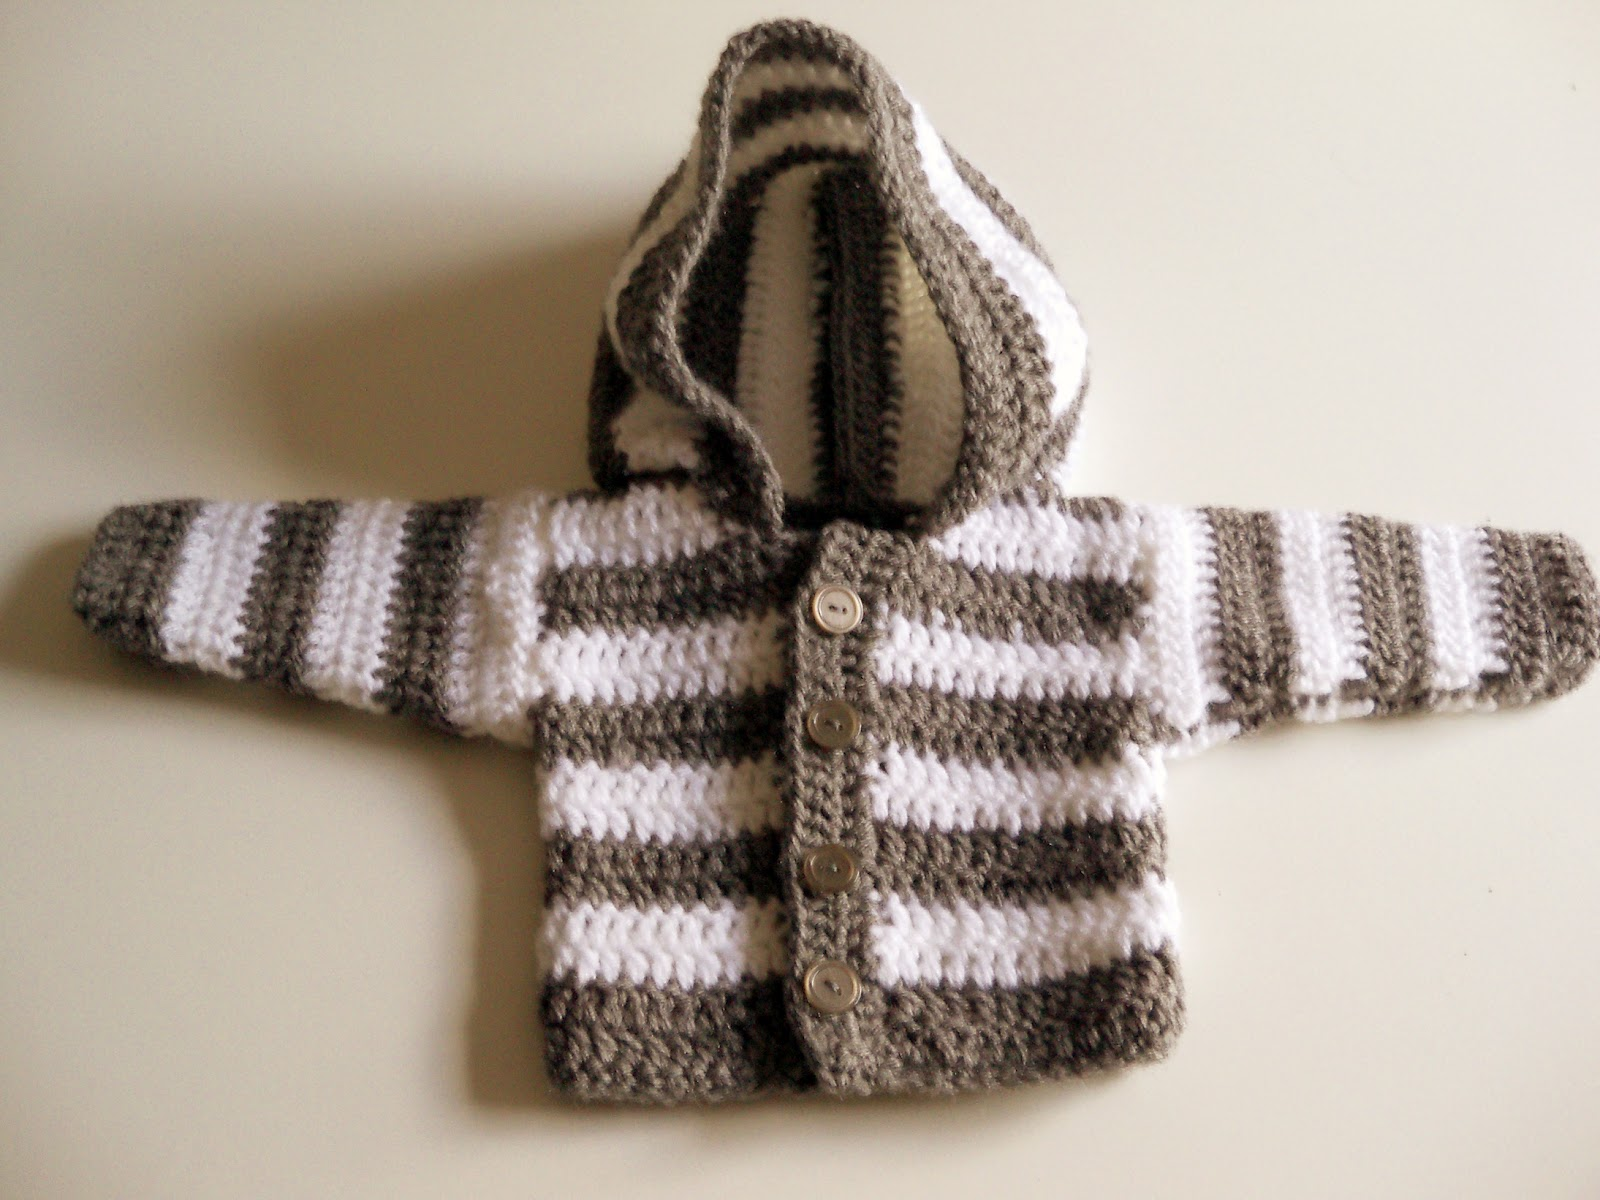 Crochet Baby Jacket Pattern : Baby Jacket Crochet Pattern Easy - White Polo Sweater